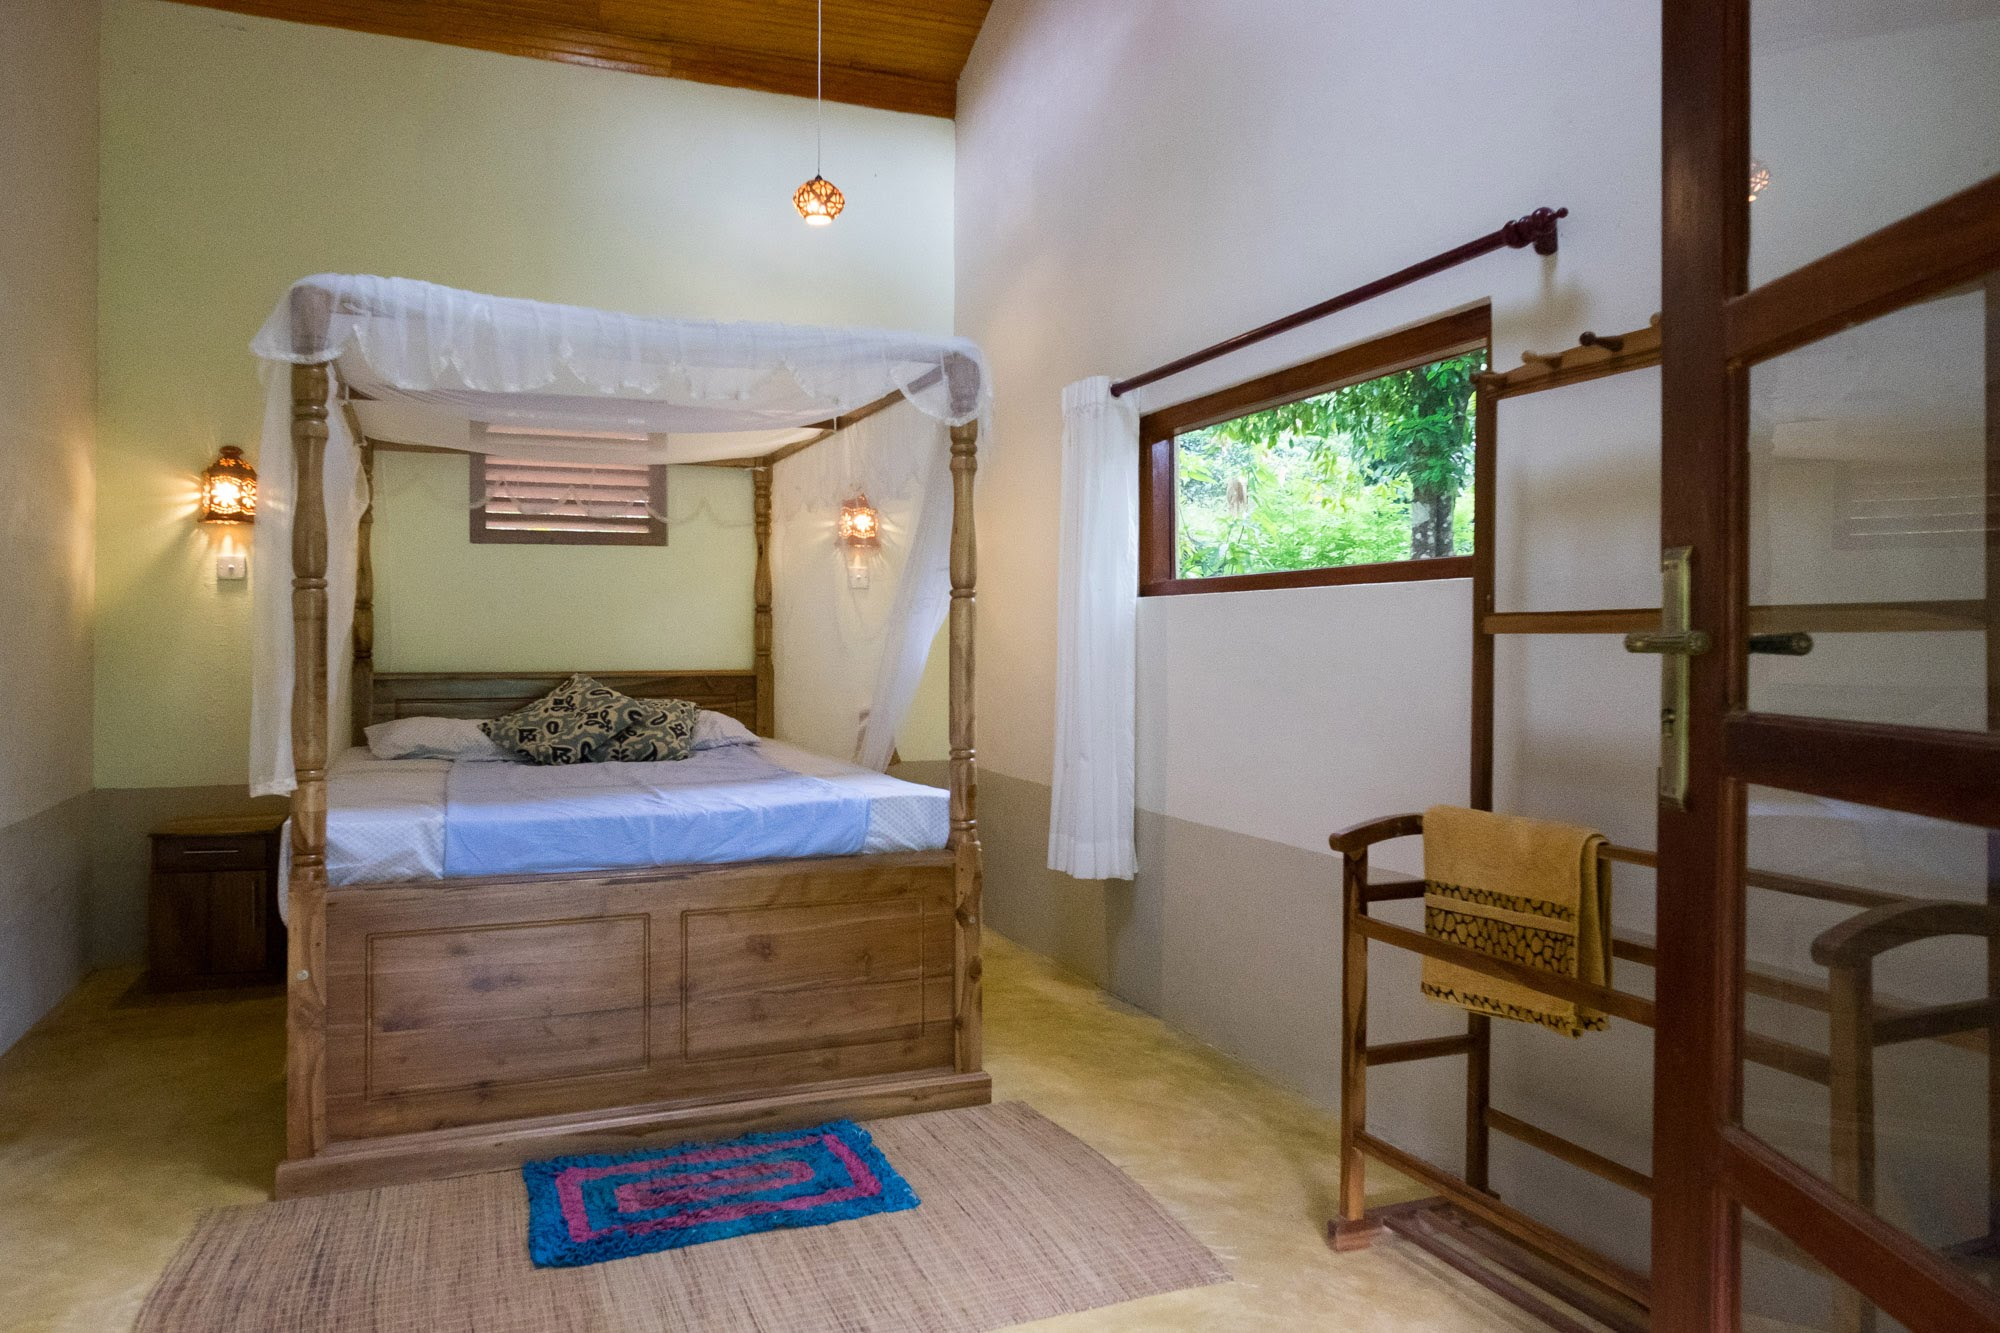 Features - Comfortable rooms with high ceilings.En-suite bathroom with hot water.Large veranda with dining table, hammocks and reclining chairs.Natural air-conditioning from our mild climate.